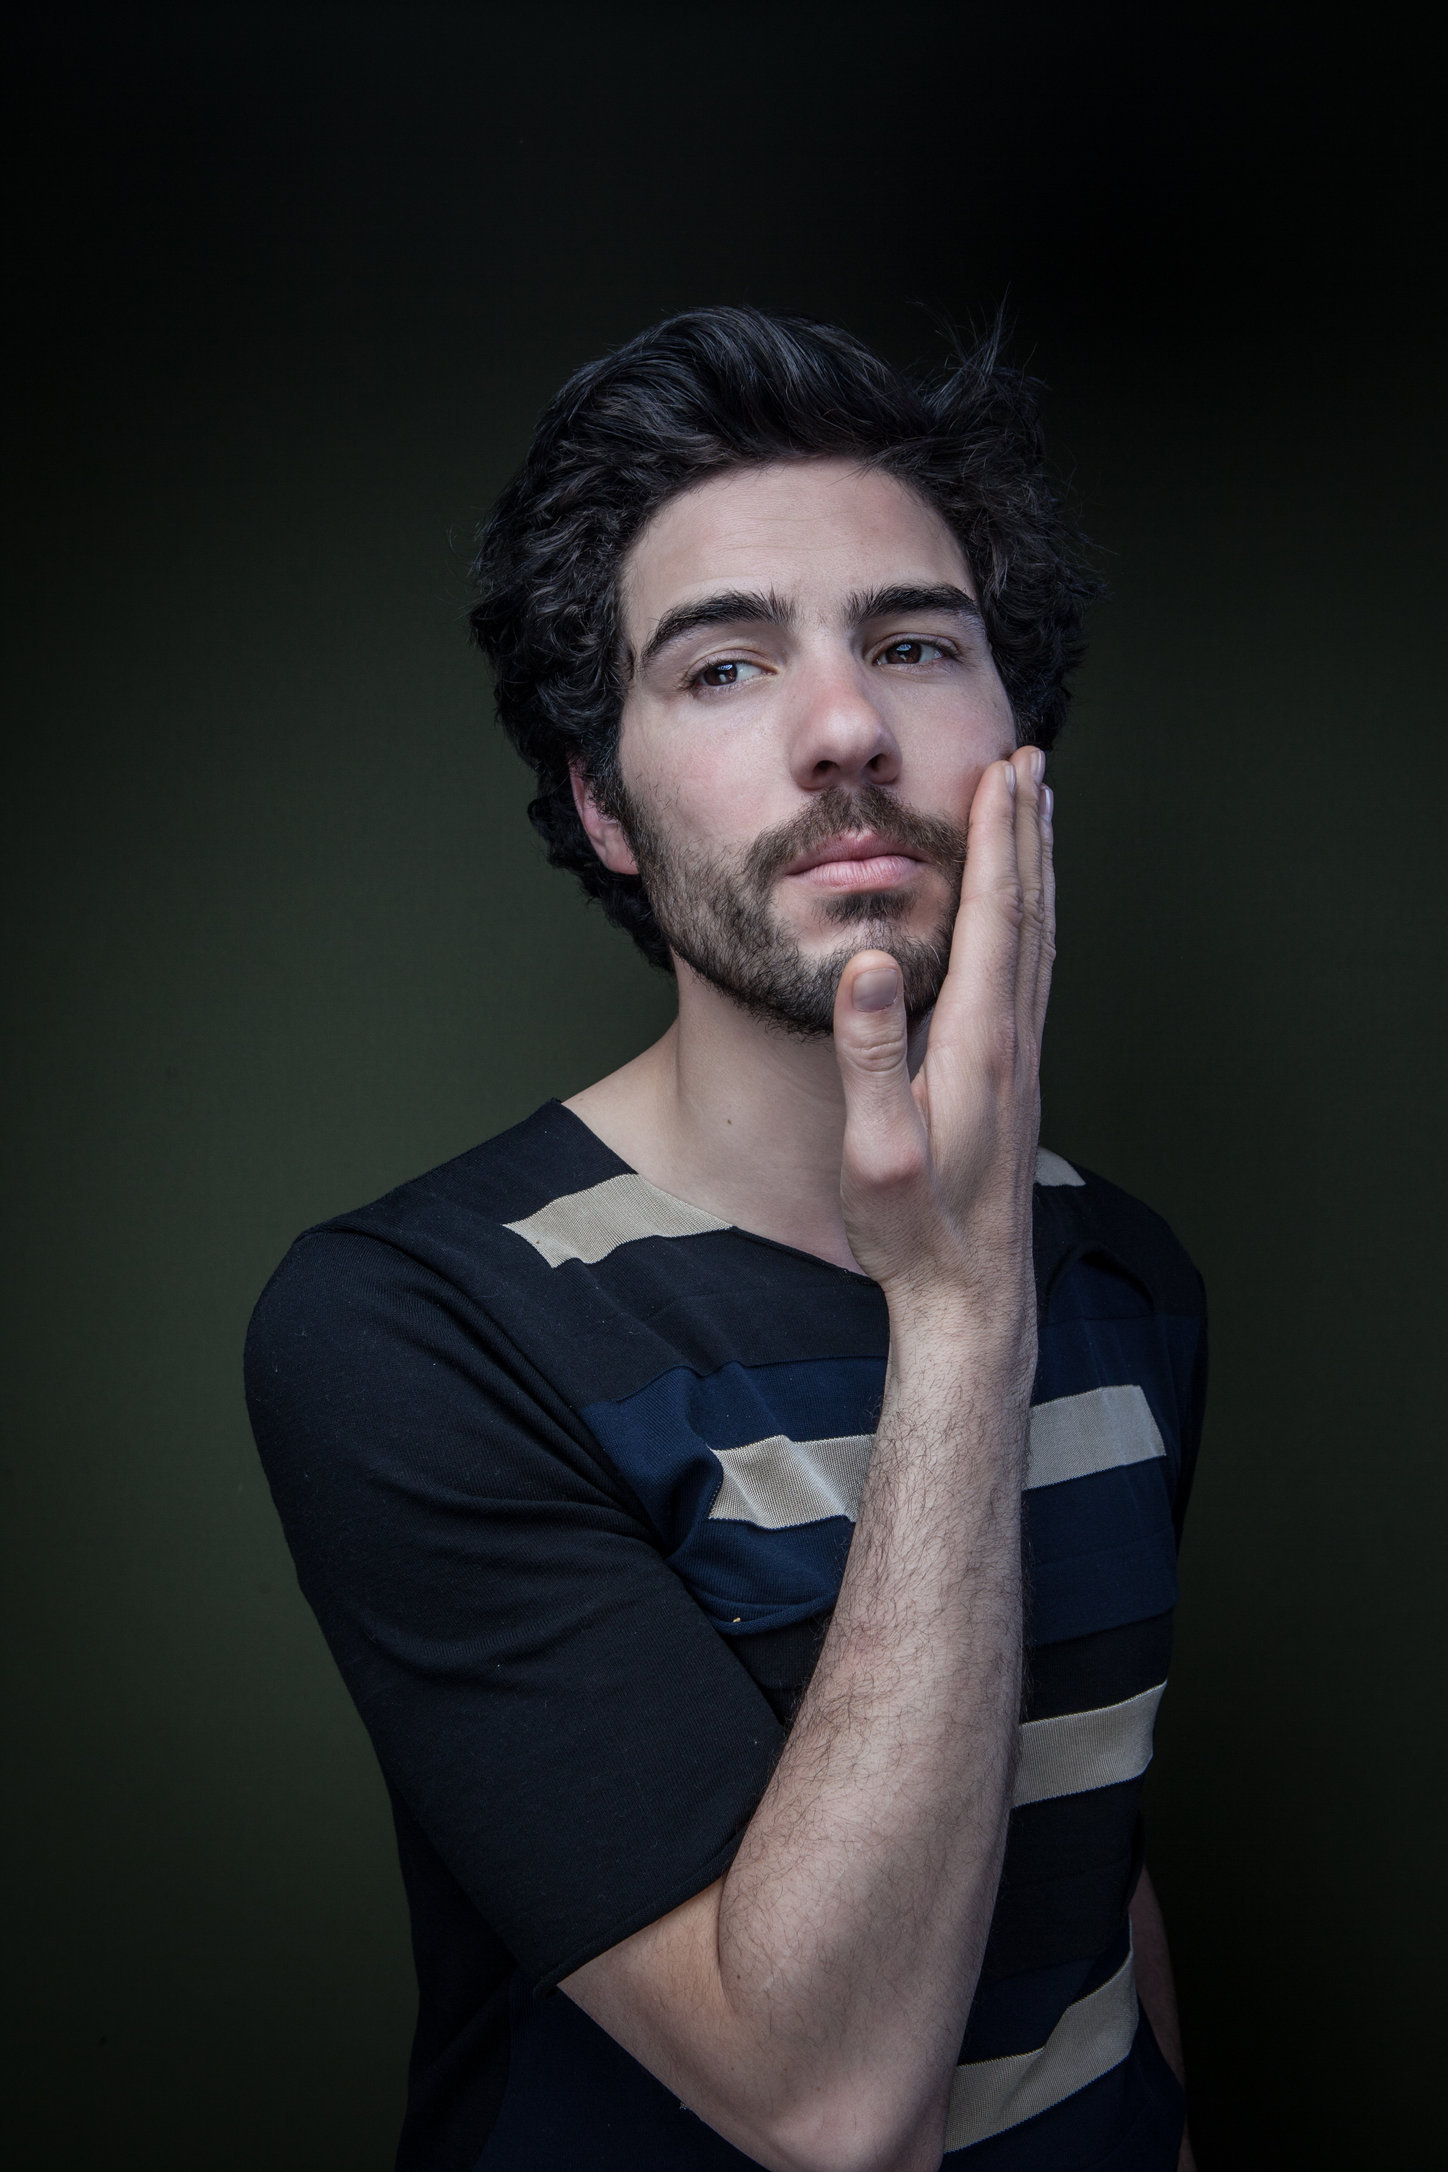 tahar rahim, actor